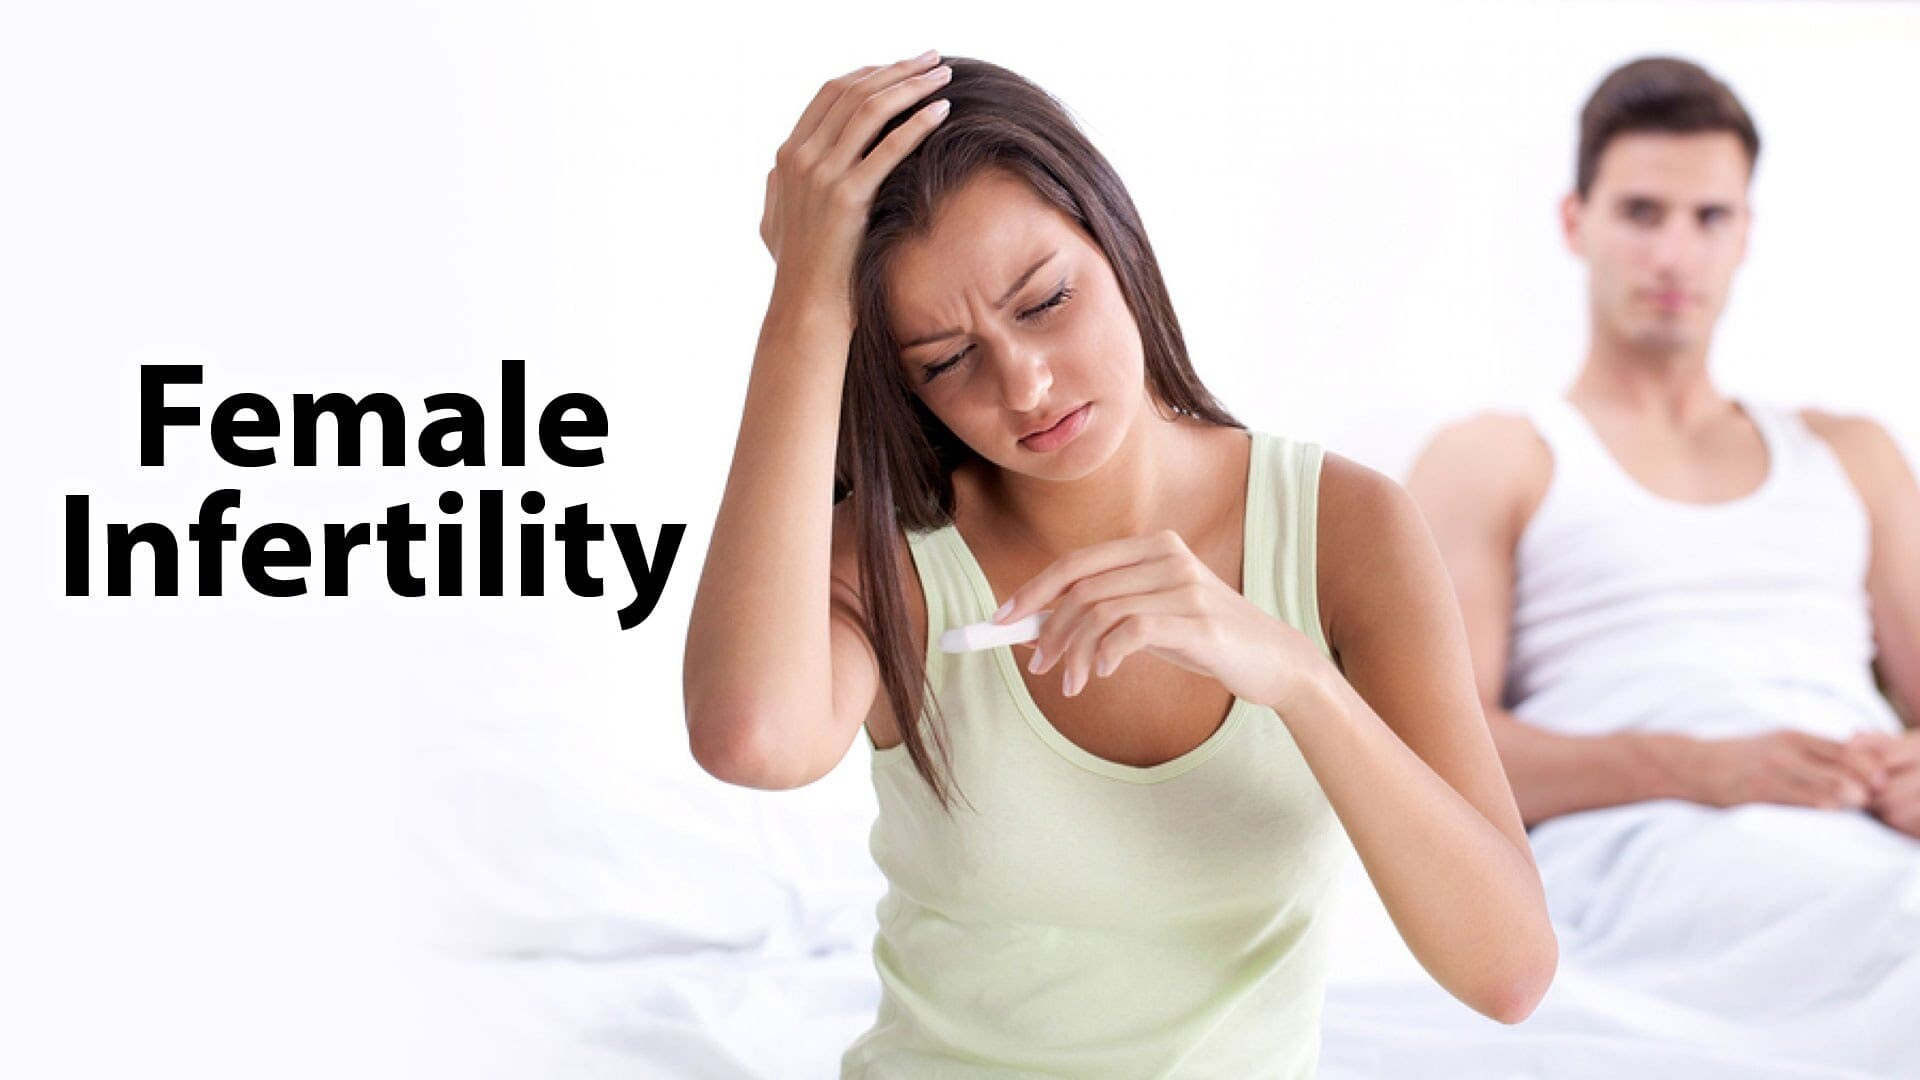 What can cause Hormonal issues?